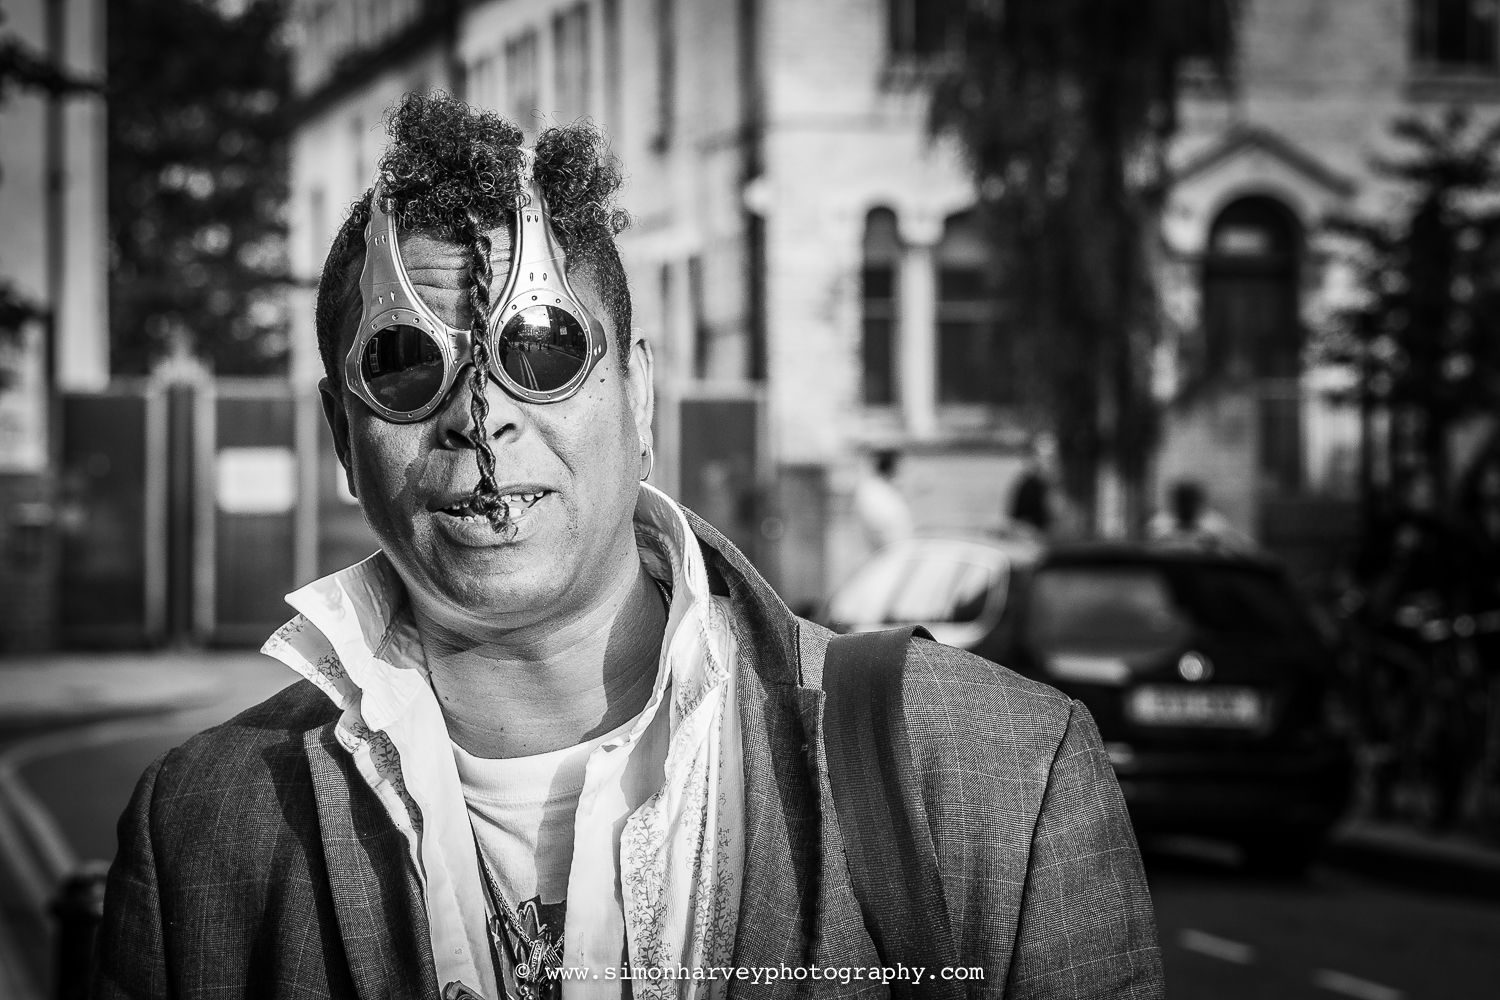 A character who caught my eye whilst working in Hackney last week .... check out those Shades!! Top Guy!